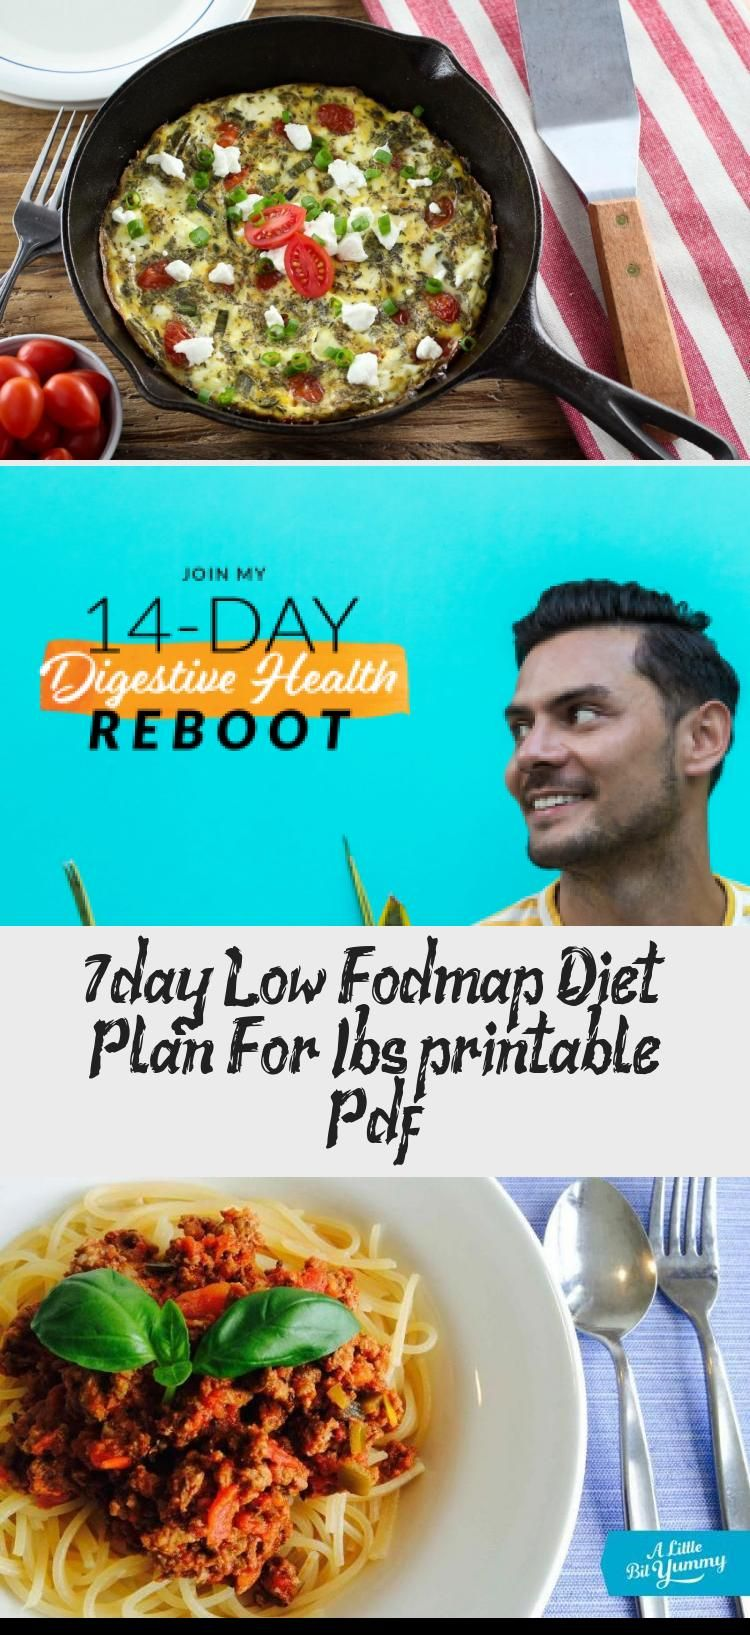 Do You Look For Low FODMAP Recipes That Are Simple & Easy